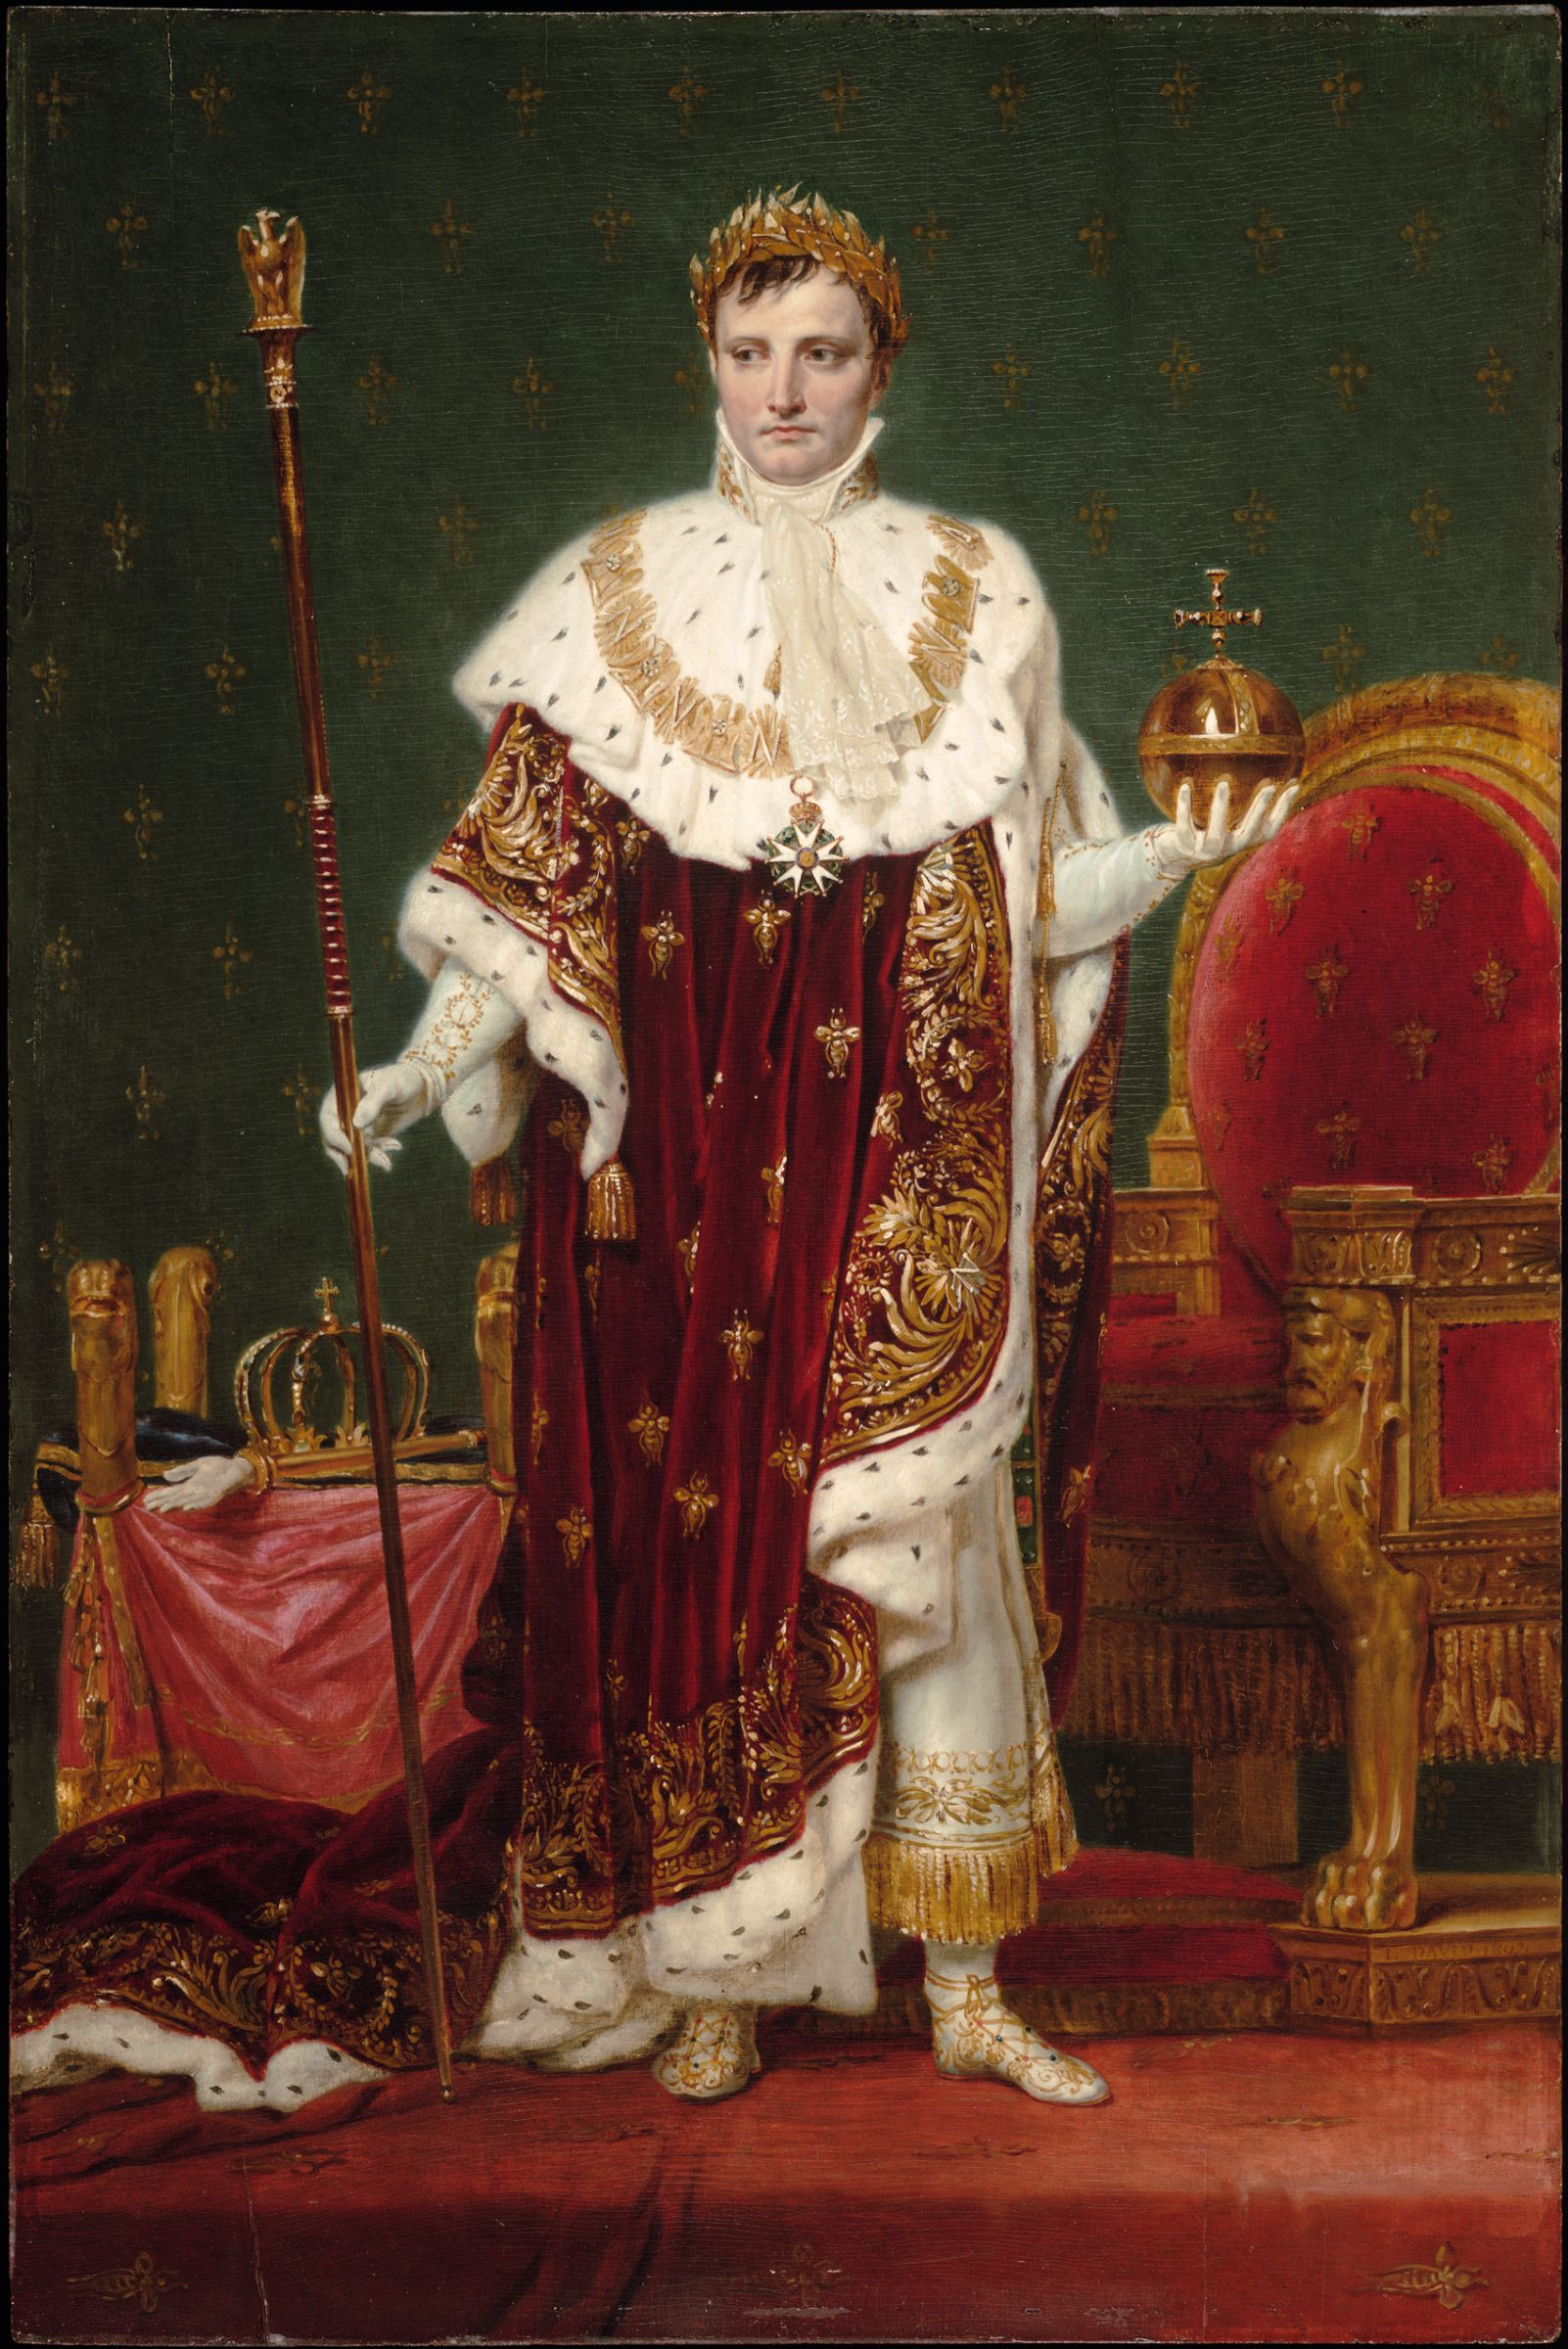 Portrait_of_Napoleon_I_in_His_Coronation_Robes_%28David%29.jpg